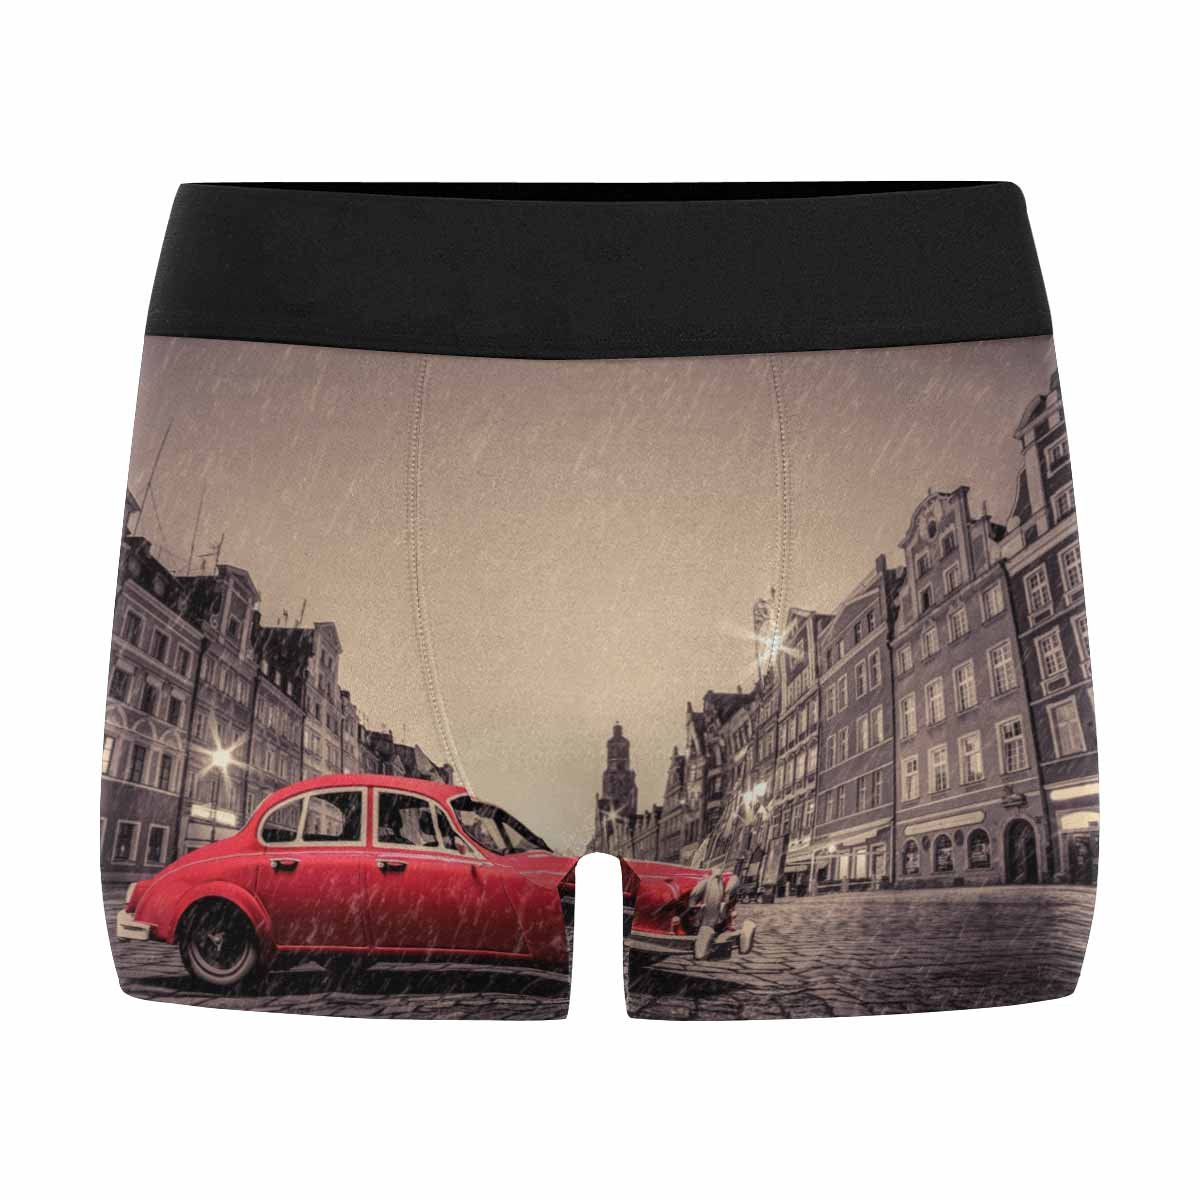 INTERESTPRINT Custom Mens Boxer Briefs Retro Red Car on Cobblestone Historic Old Town in Rain XS-3XL